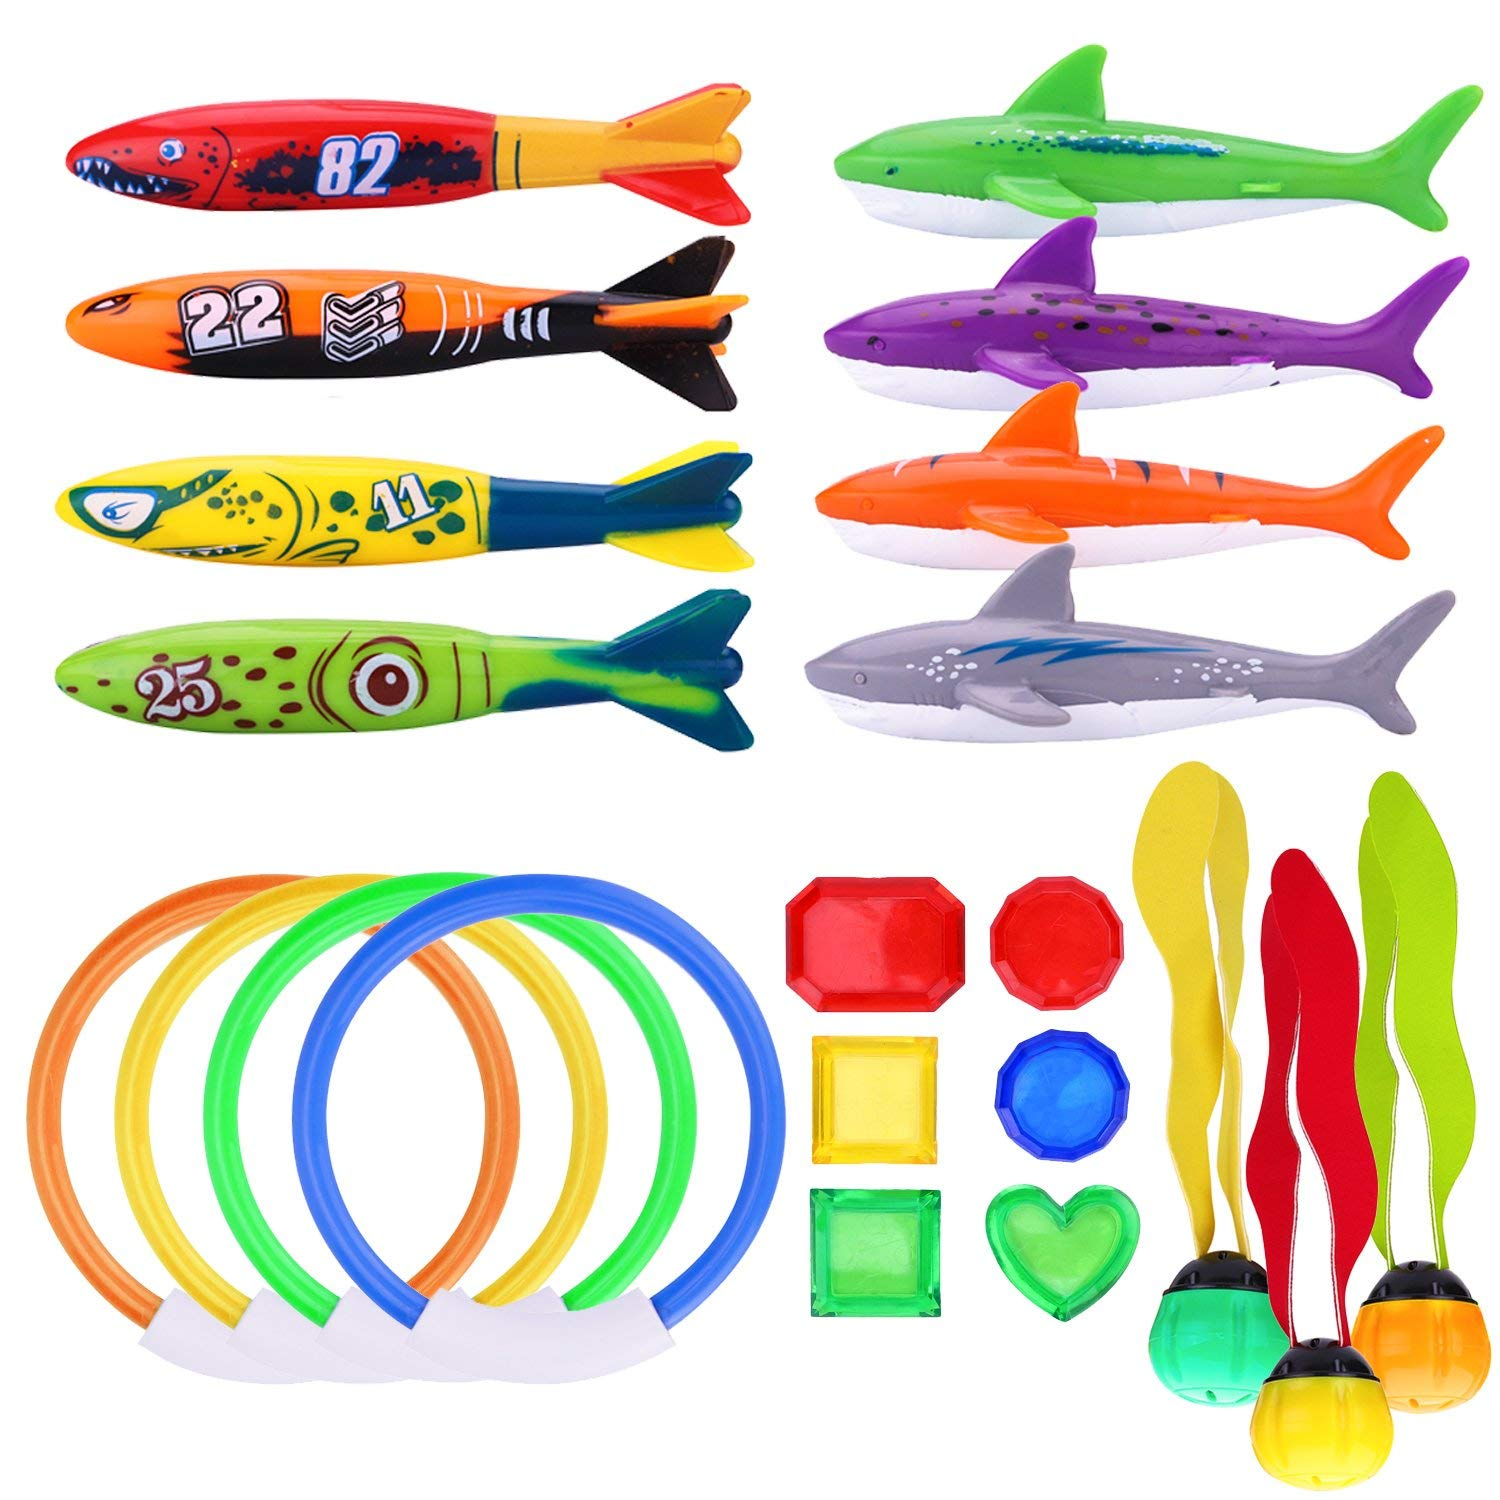 R.HORSE 21 PCS Underwater Swimming/Diving Pool Toy Set, Diving Rings, Toypedo Bandits, Diving Toy Balls, Under Water Treasures Gift, Diving Shark Toy, Dive Gift for Children Kids